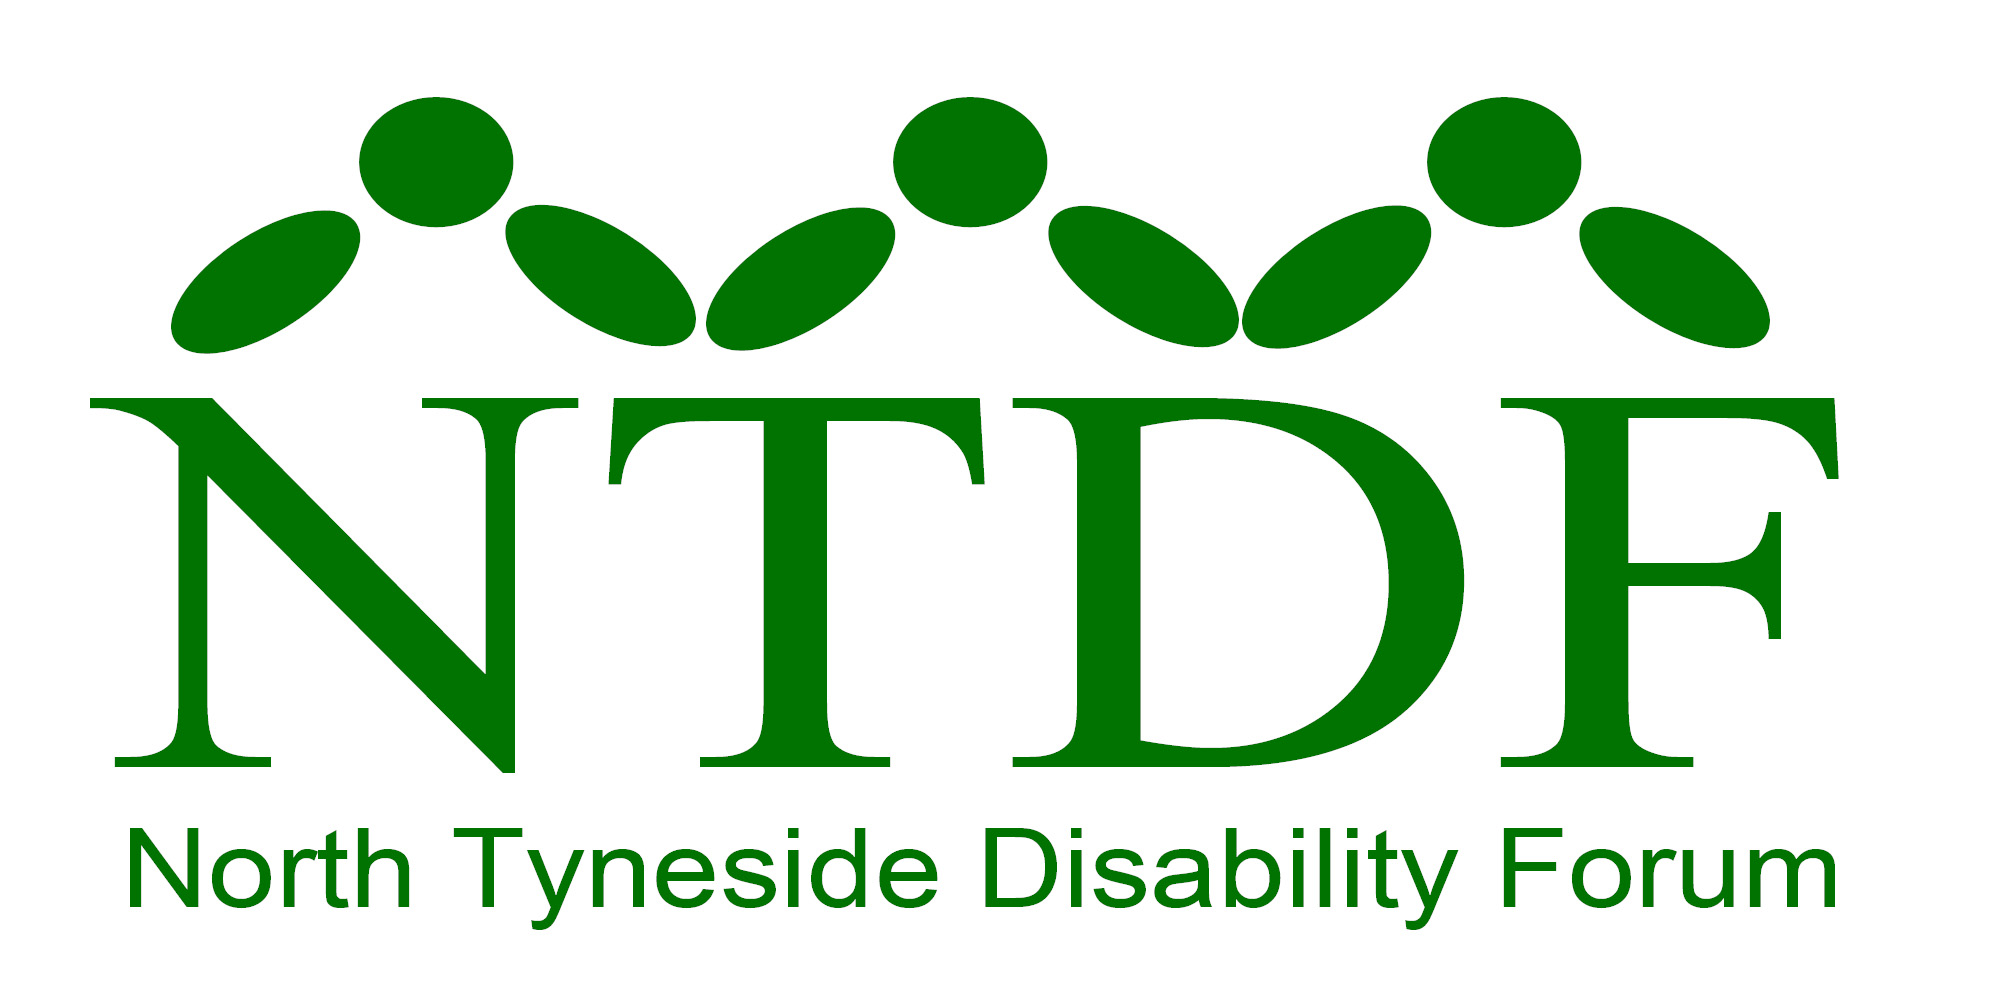 acronym to North Tyneside Disability Forum